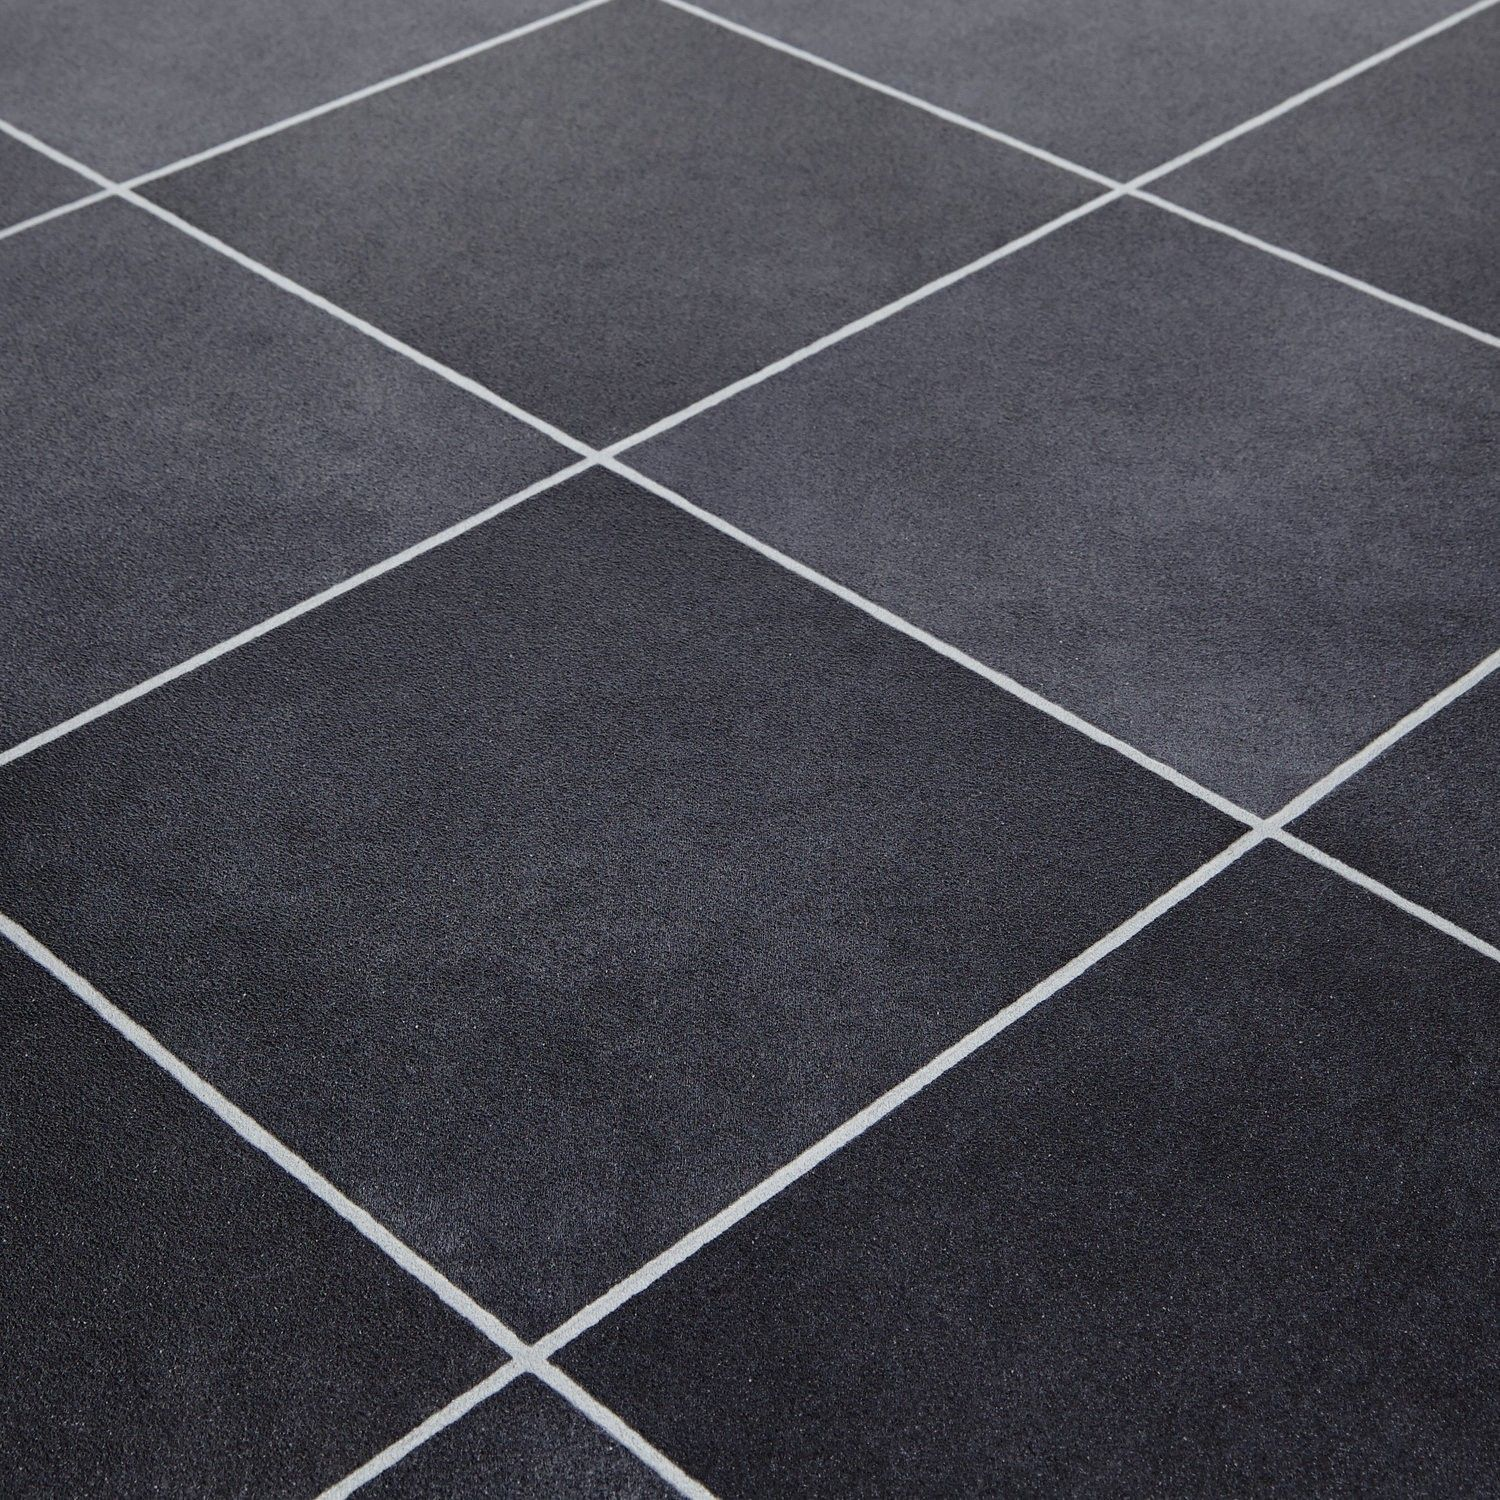 Mardi gras 598 durango black stone tile vinyl flooring for Floor vinyl tiles